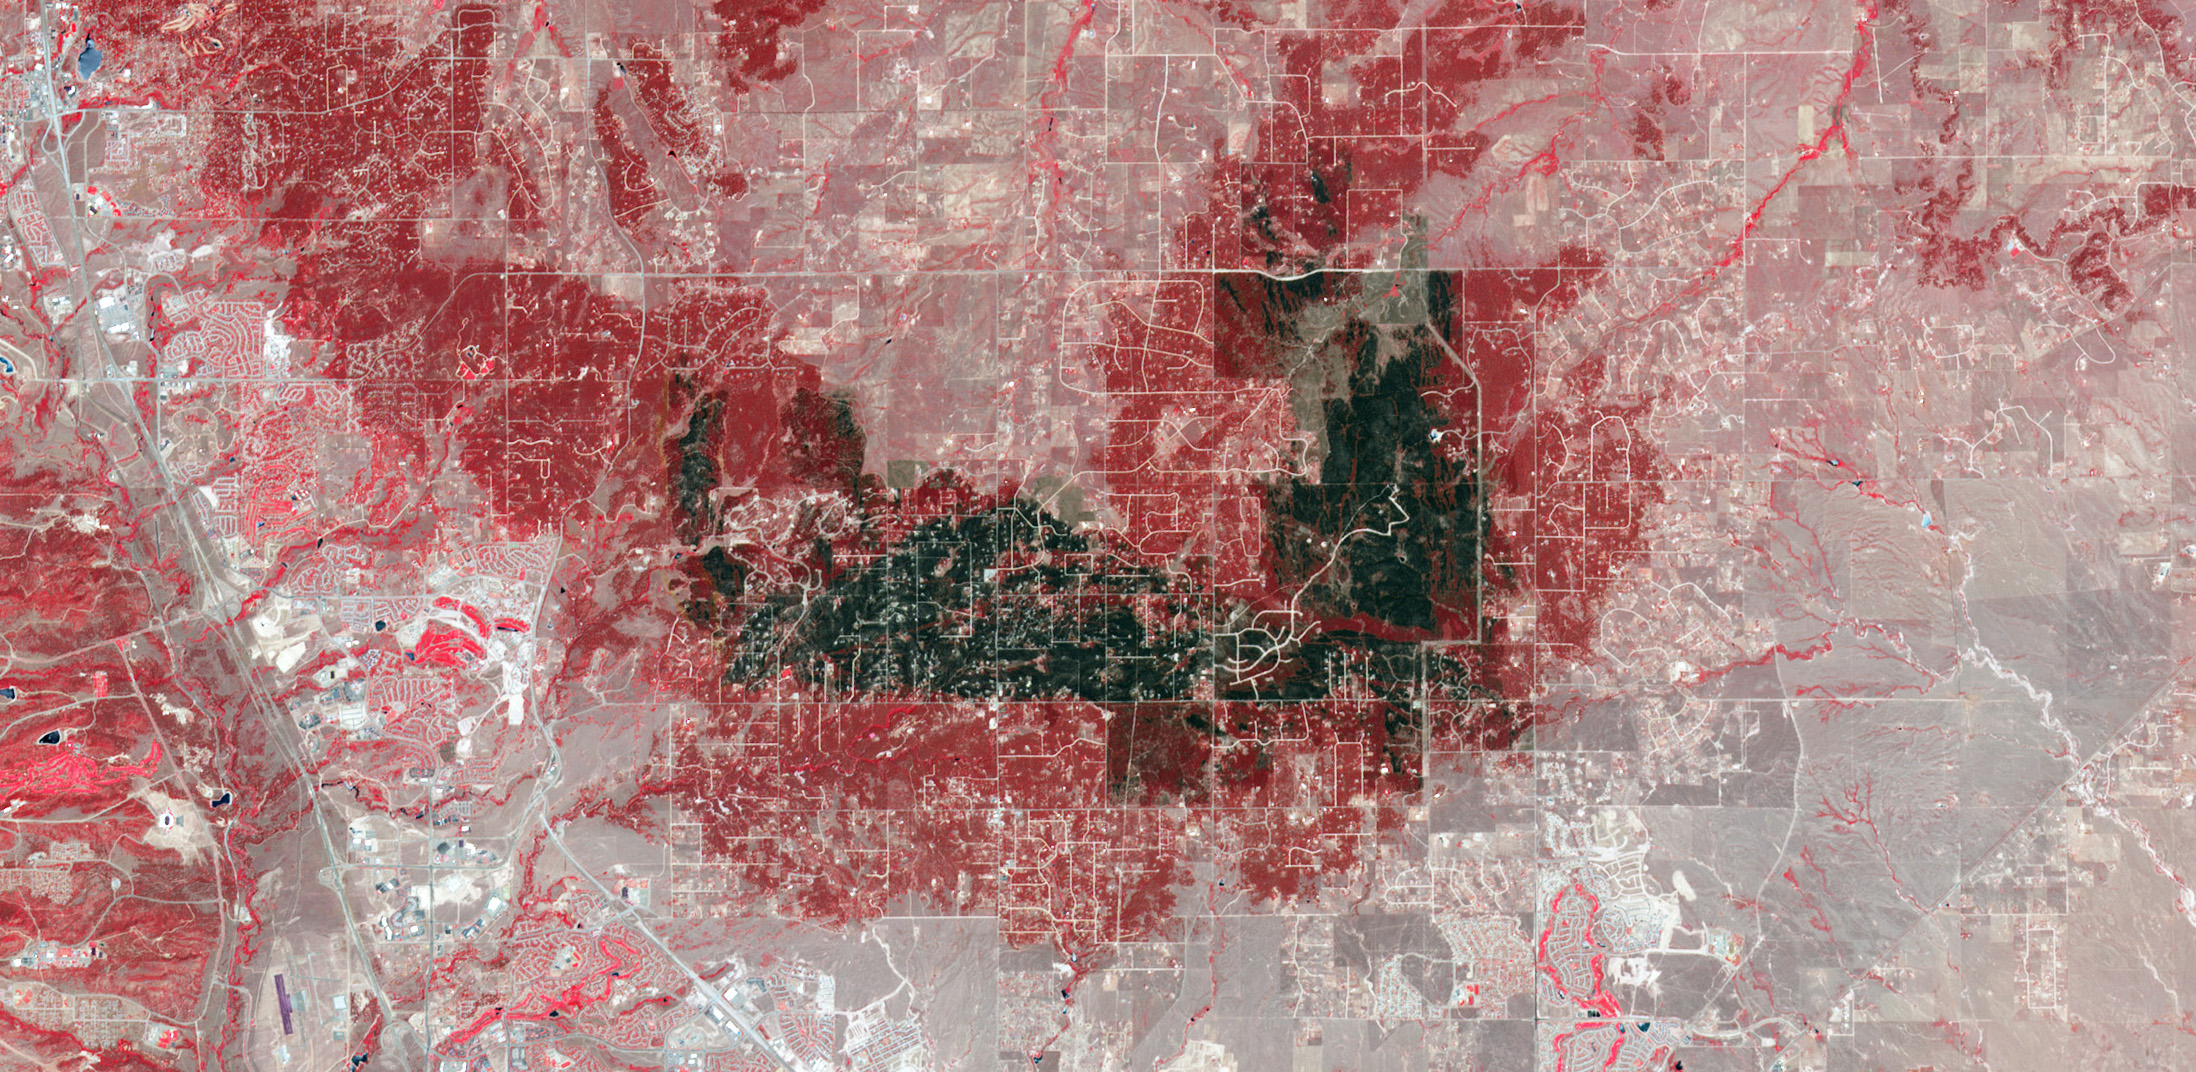 False-color image of the Black Forest burn scar from NASA's Terra satellite, June 21, 2013. The darkest gray and black areas are the most severely burned. Unburned forest patches are bright red. Unburned grasslands are pink. Buildings, roads, and other developed areas are light gray or white. Image Credit: NASA's Earth Observatory More from NASA's Earth Observatory